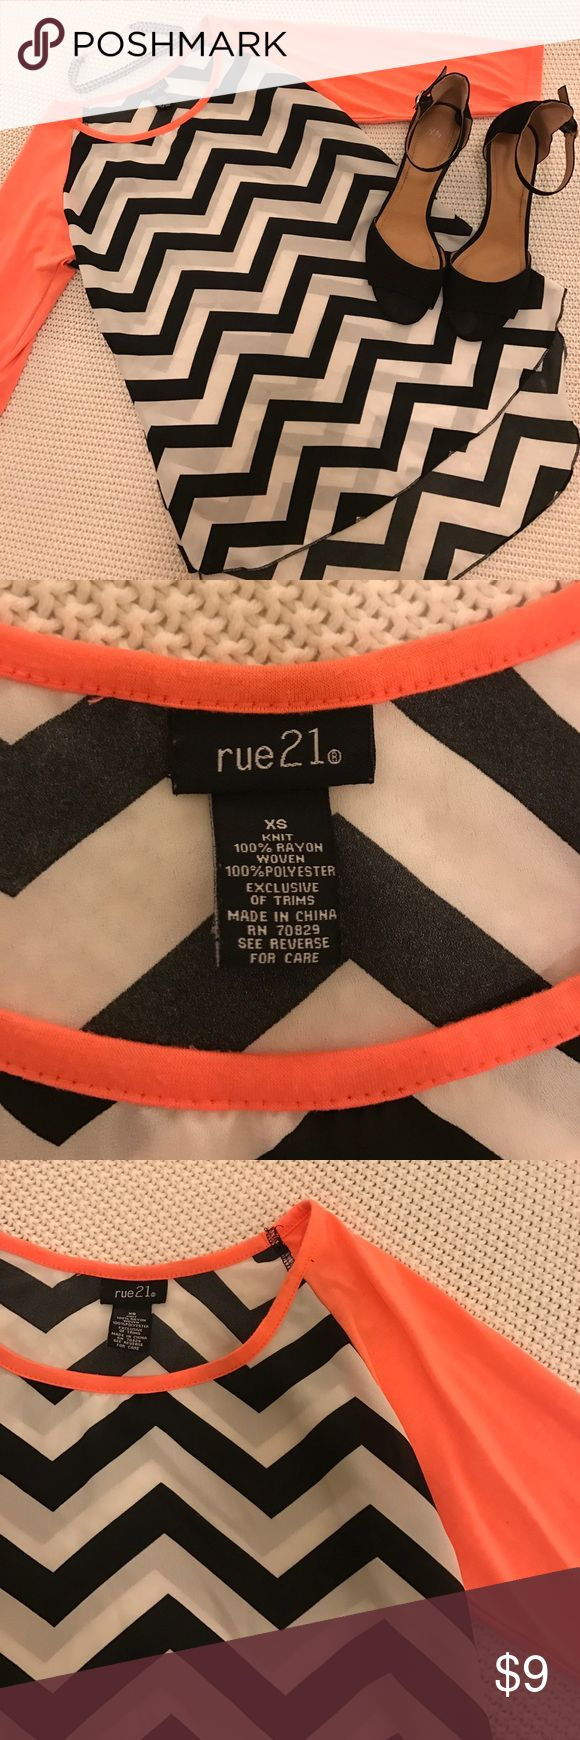 Pink/Black and White Chevron Top Size XS. Worn twice. Excellent condition. Perfect with black pants and high heels. Rue 21 Tops Blouses